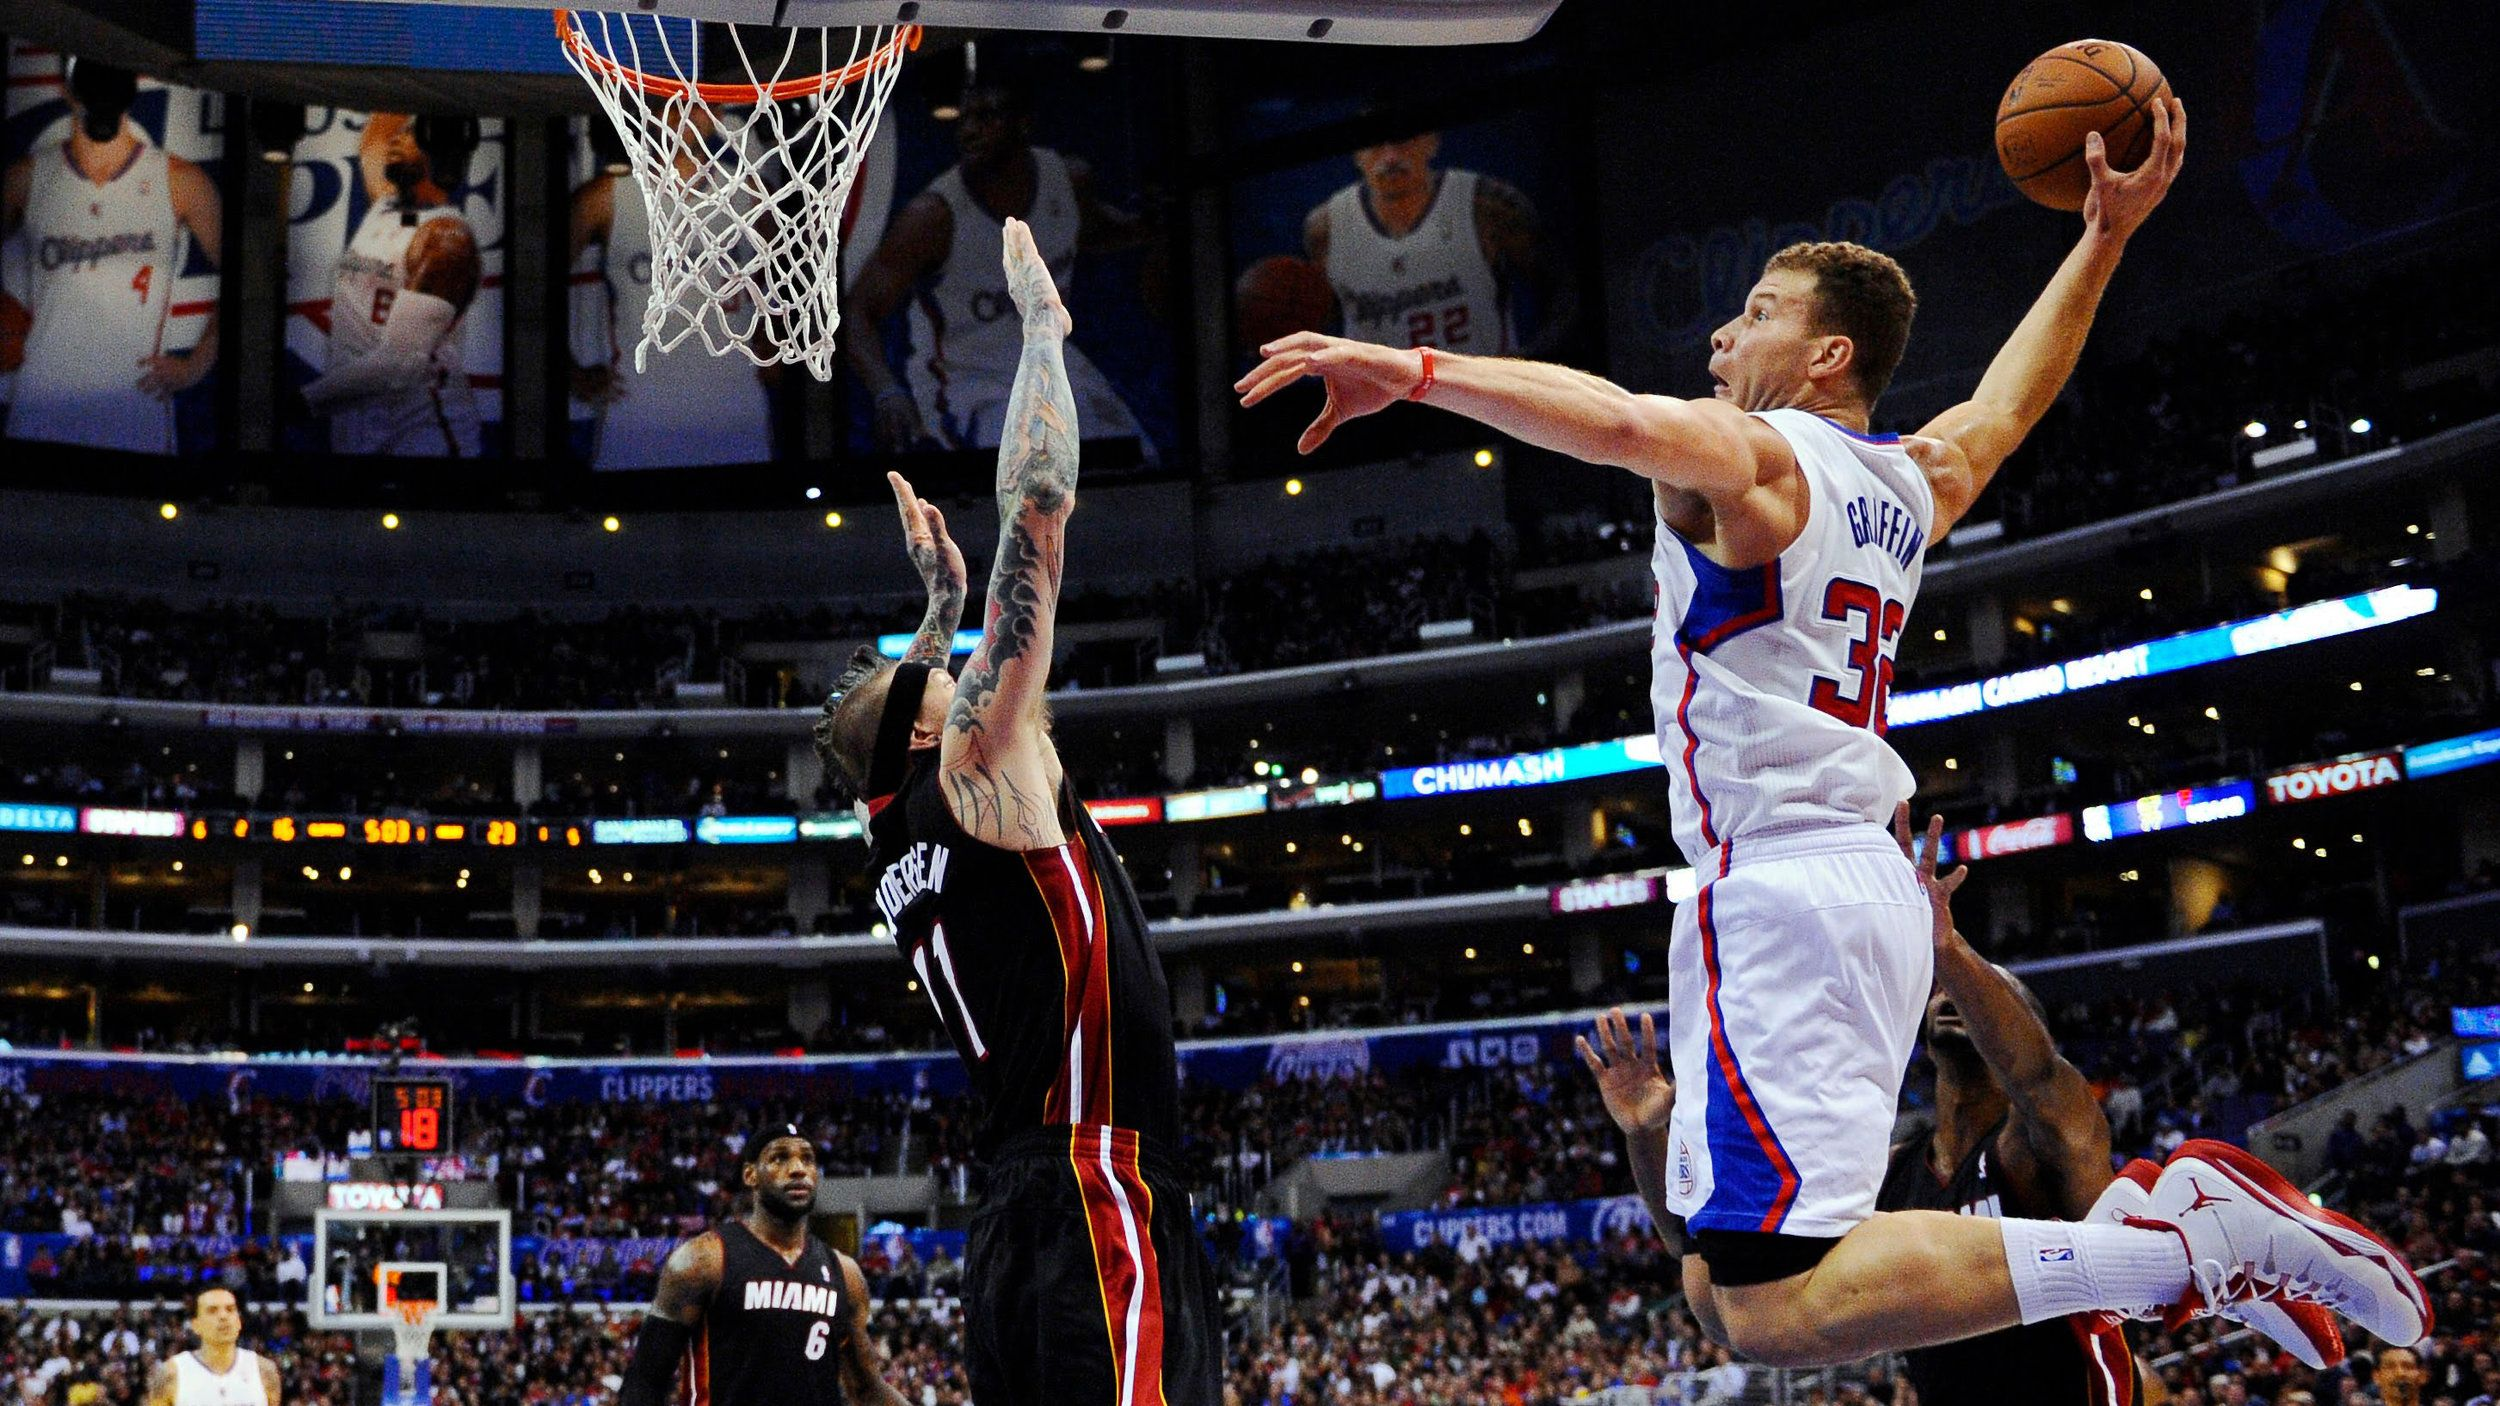 Has Blake Griffin Played His Last Game As A Clipper Velocity Sports The Sports Network For The Mobile Generation Fantasy Basketball Fanduel Blake Griffin